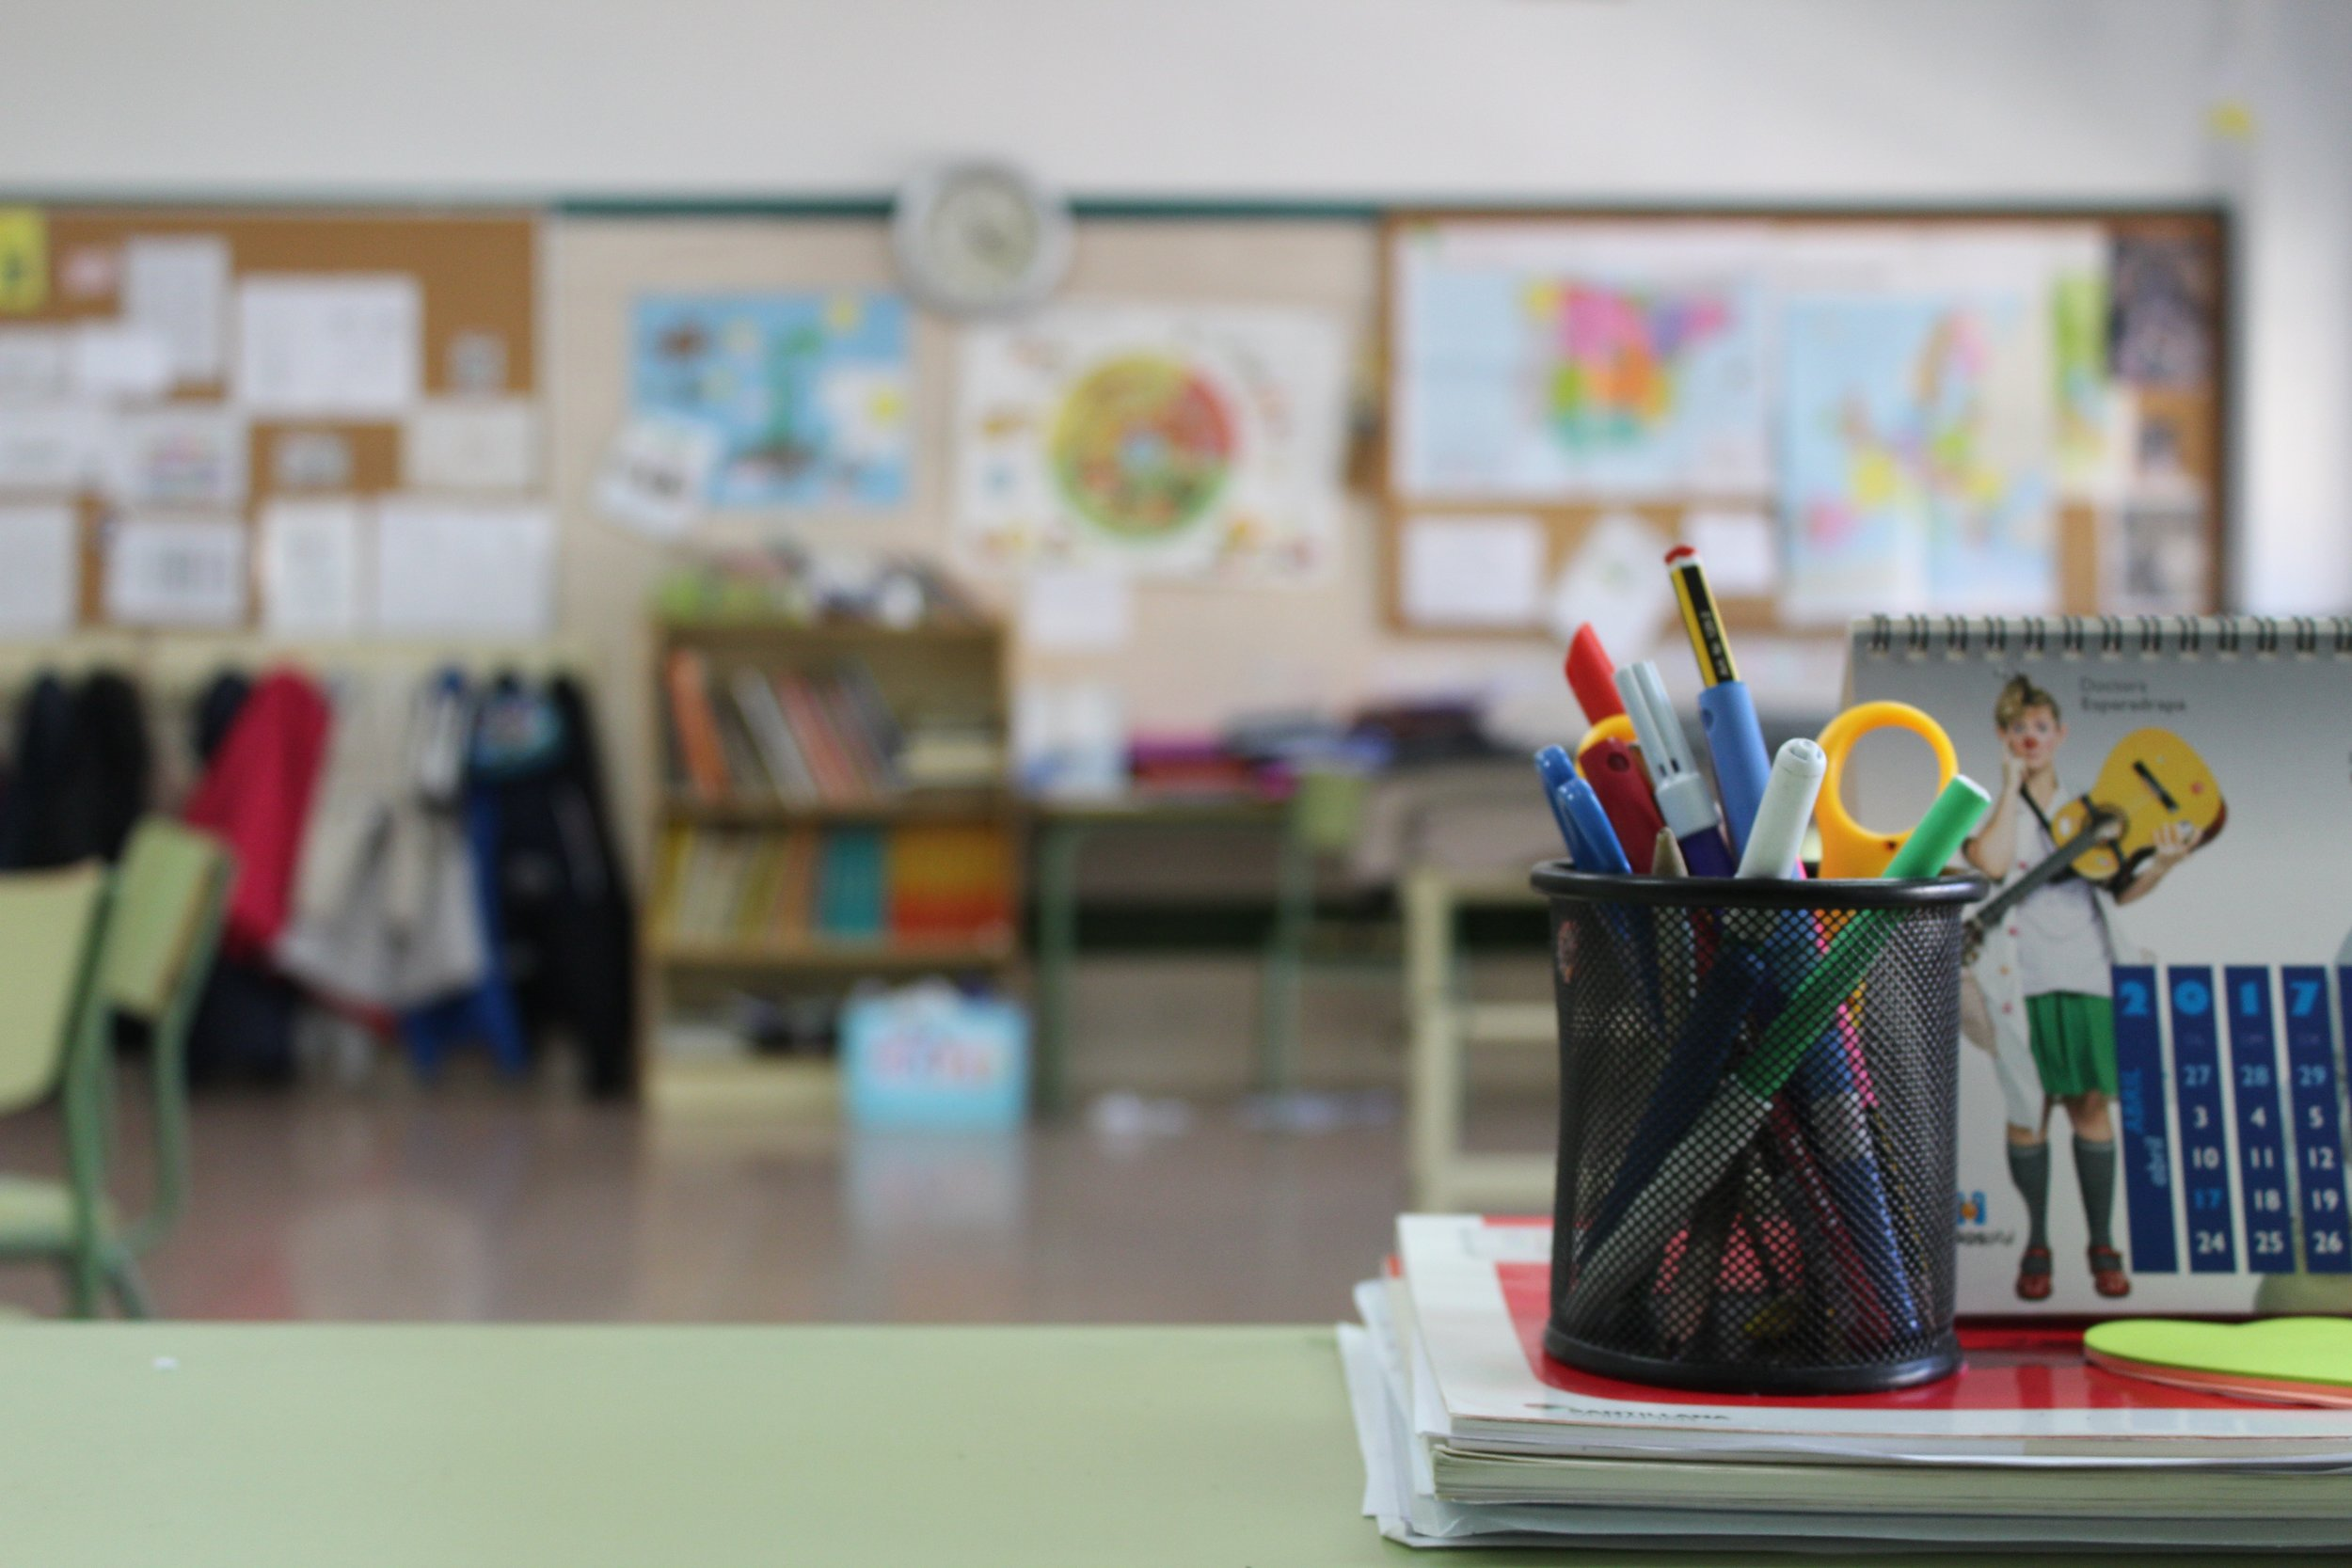 Celia Ortega  /  Unsplash      [Image description: colored photograph of a children's classroom, blurry background filled with coats, pictures, and books. A calendar and a full pencil holder sits in the clear foreground]